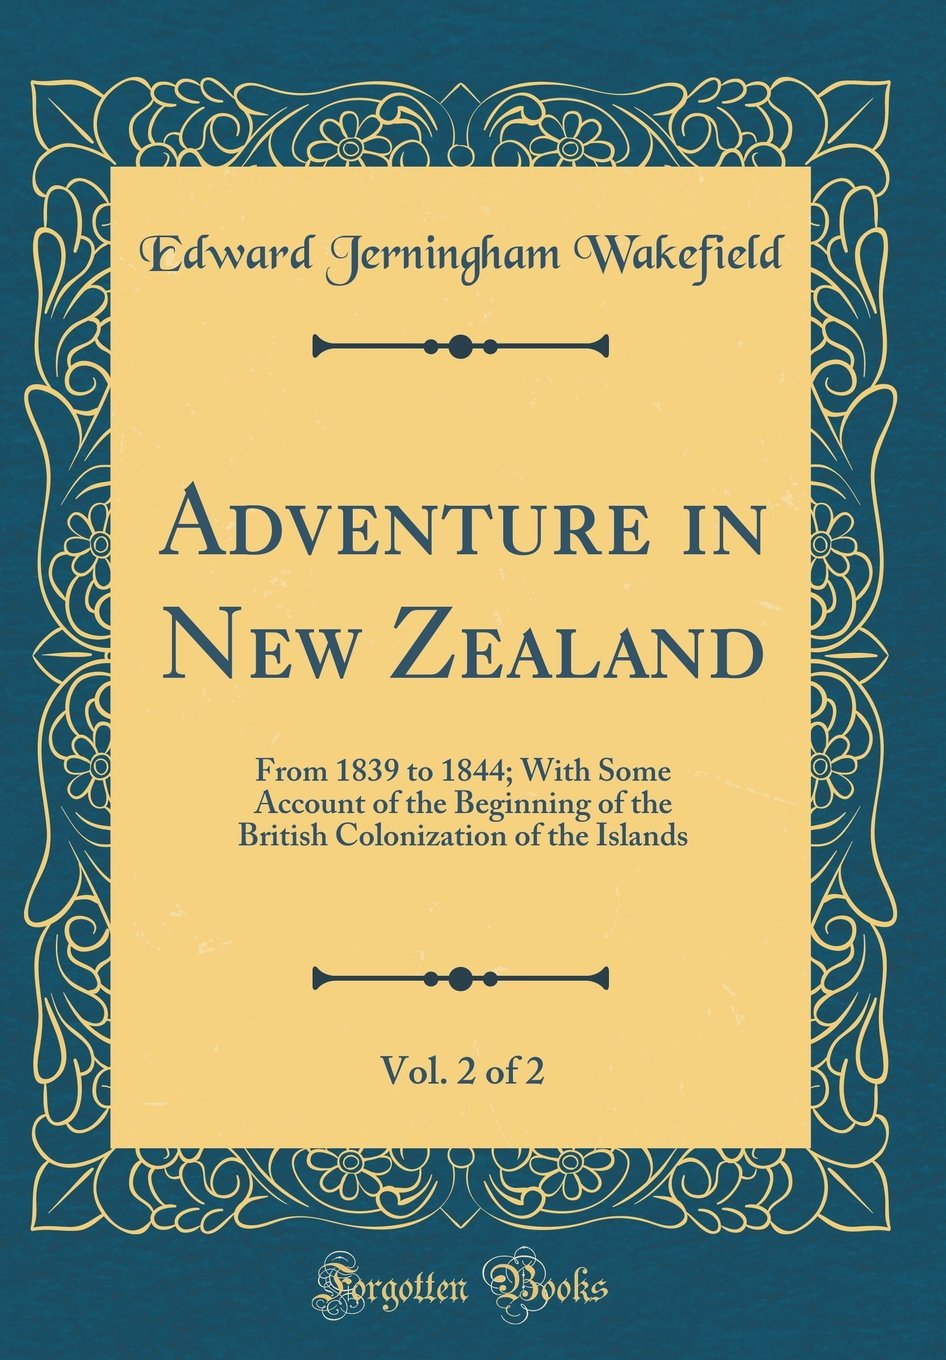 Adventure in New Zealand, Vol. 2 of 2: From 1839 to 1844; With Some Account of the Beginning of the British Colonization of the Islands (Classic Reprint) pdf